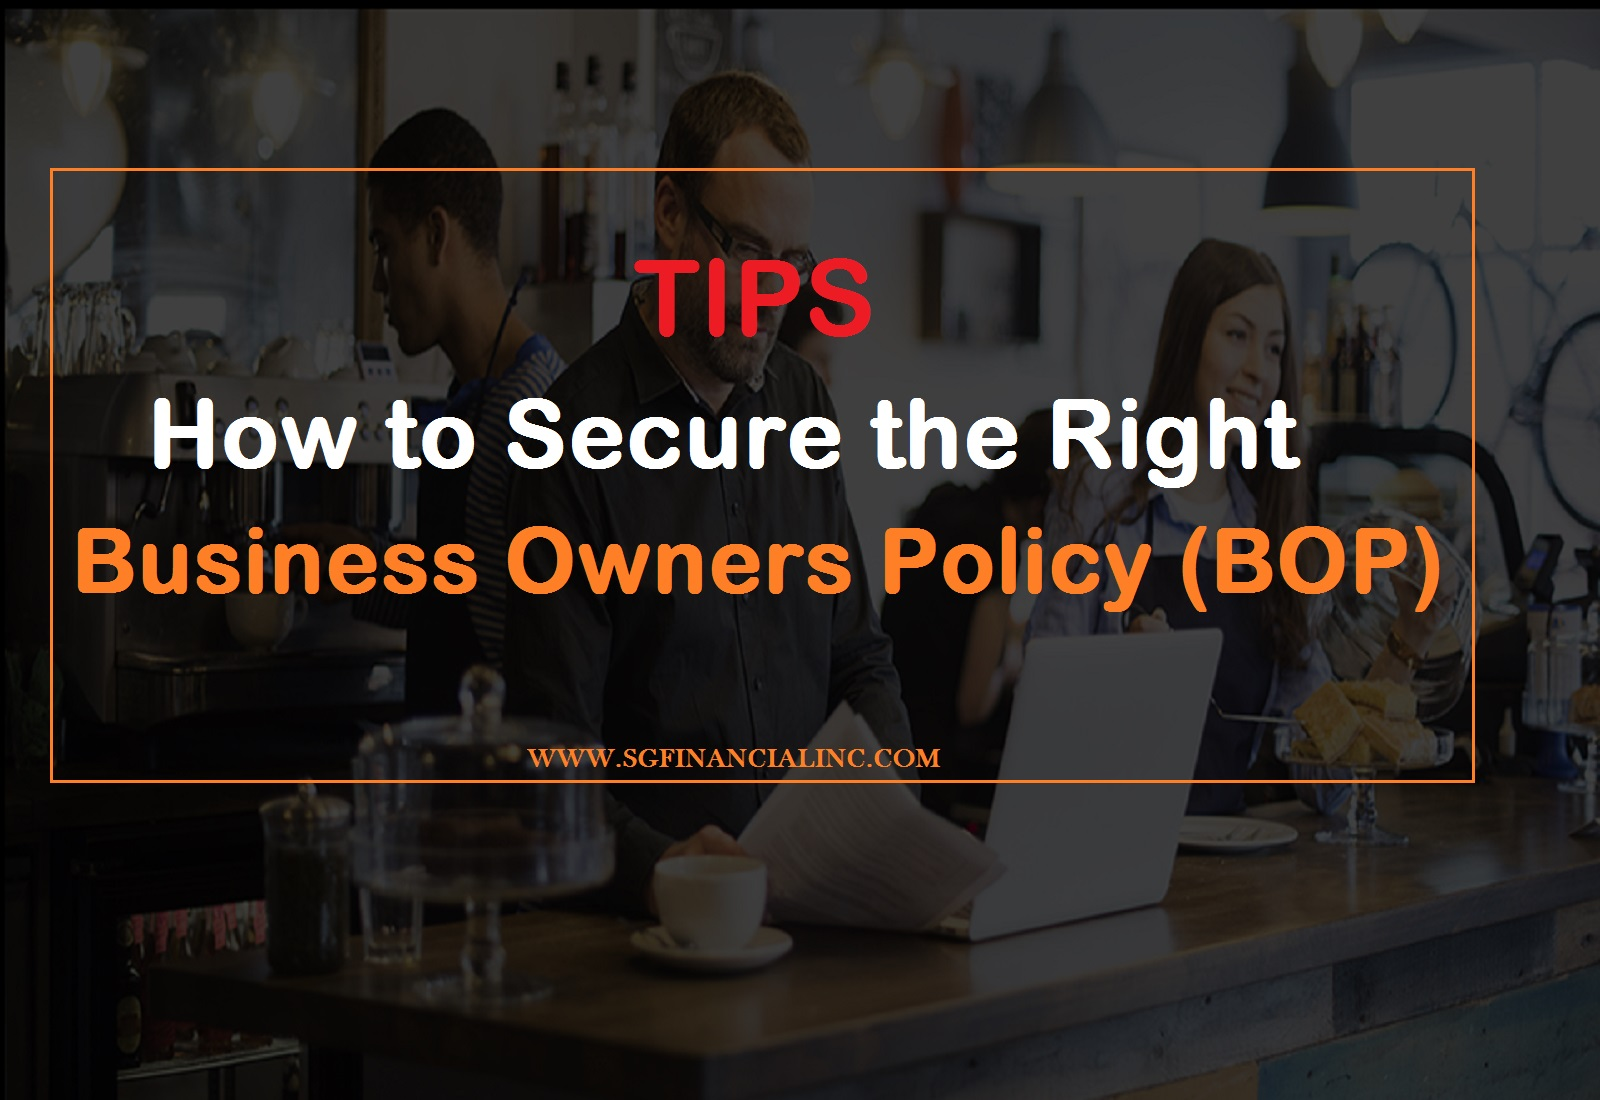 Important Tips on How to Secure the Right Business Owners Policy (BOP)